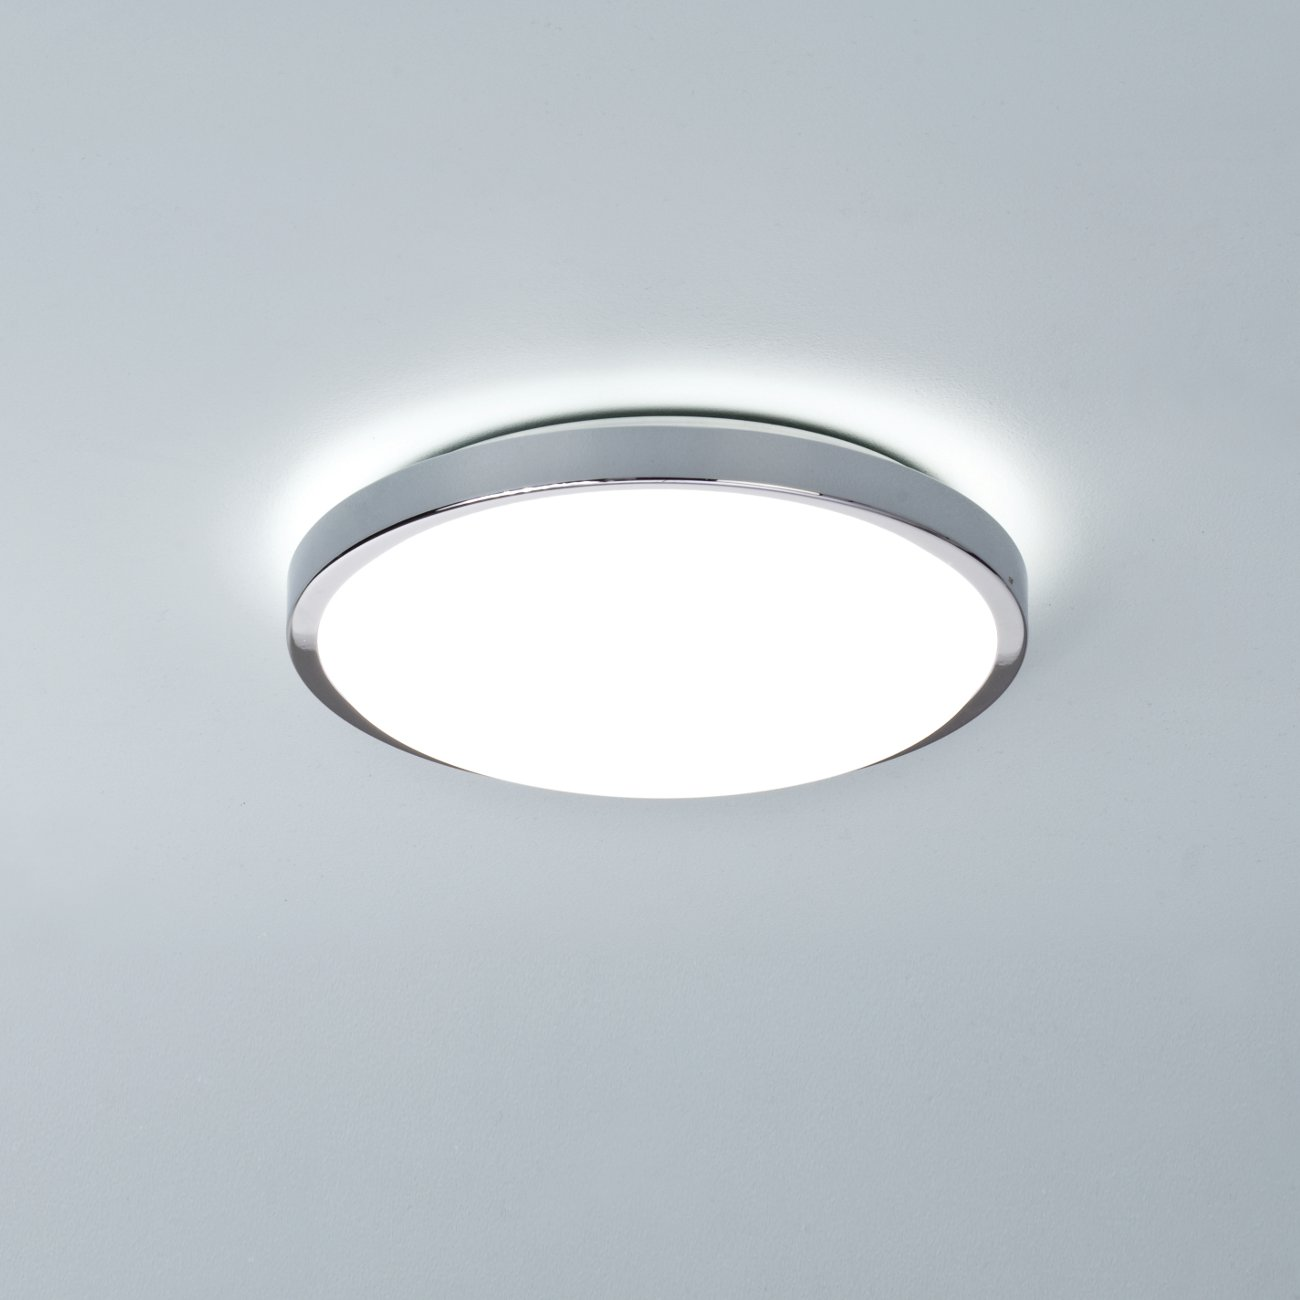 Flache, schlichte Bad-Deckenlampe in Chrom DENIA - Luuz.de | {Bad deckenlampen 36}